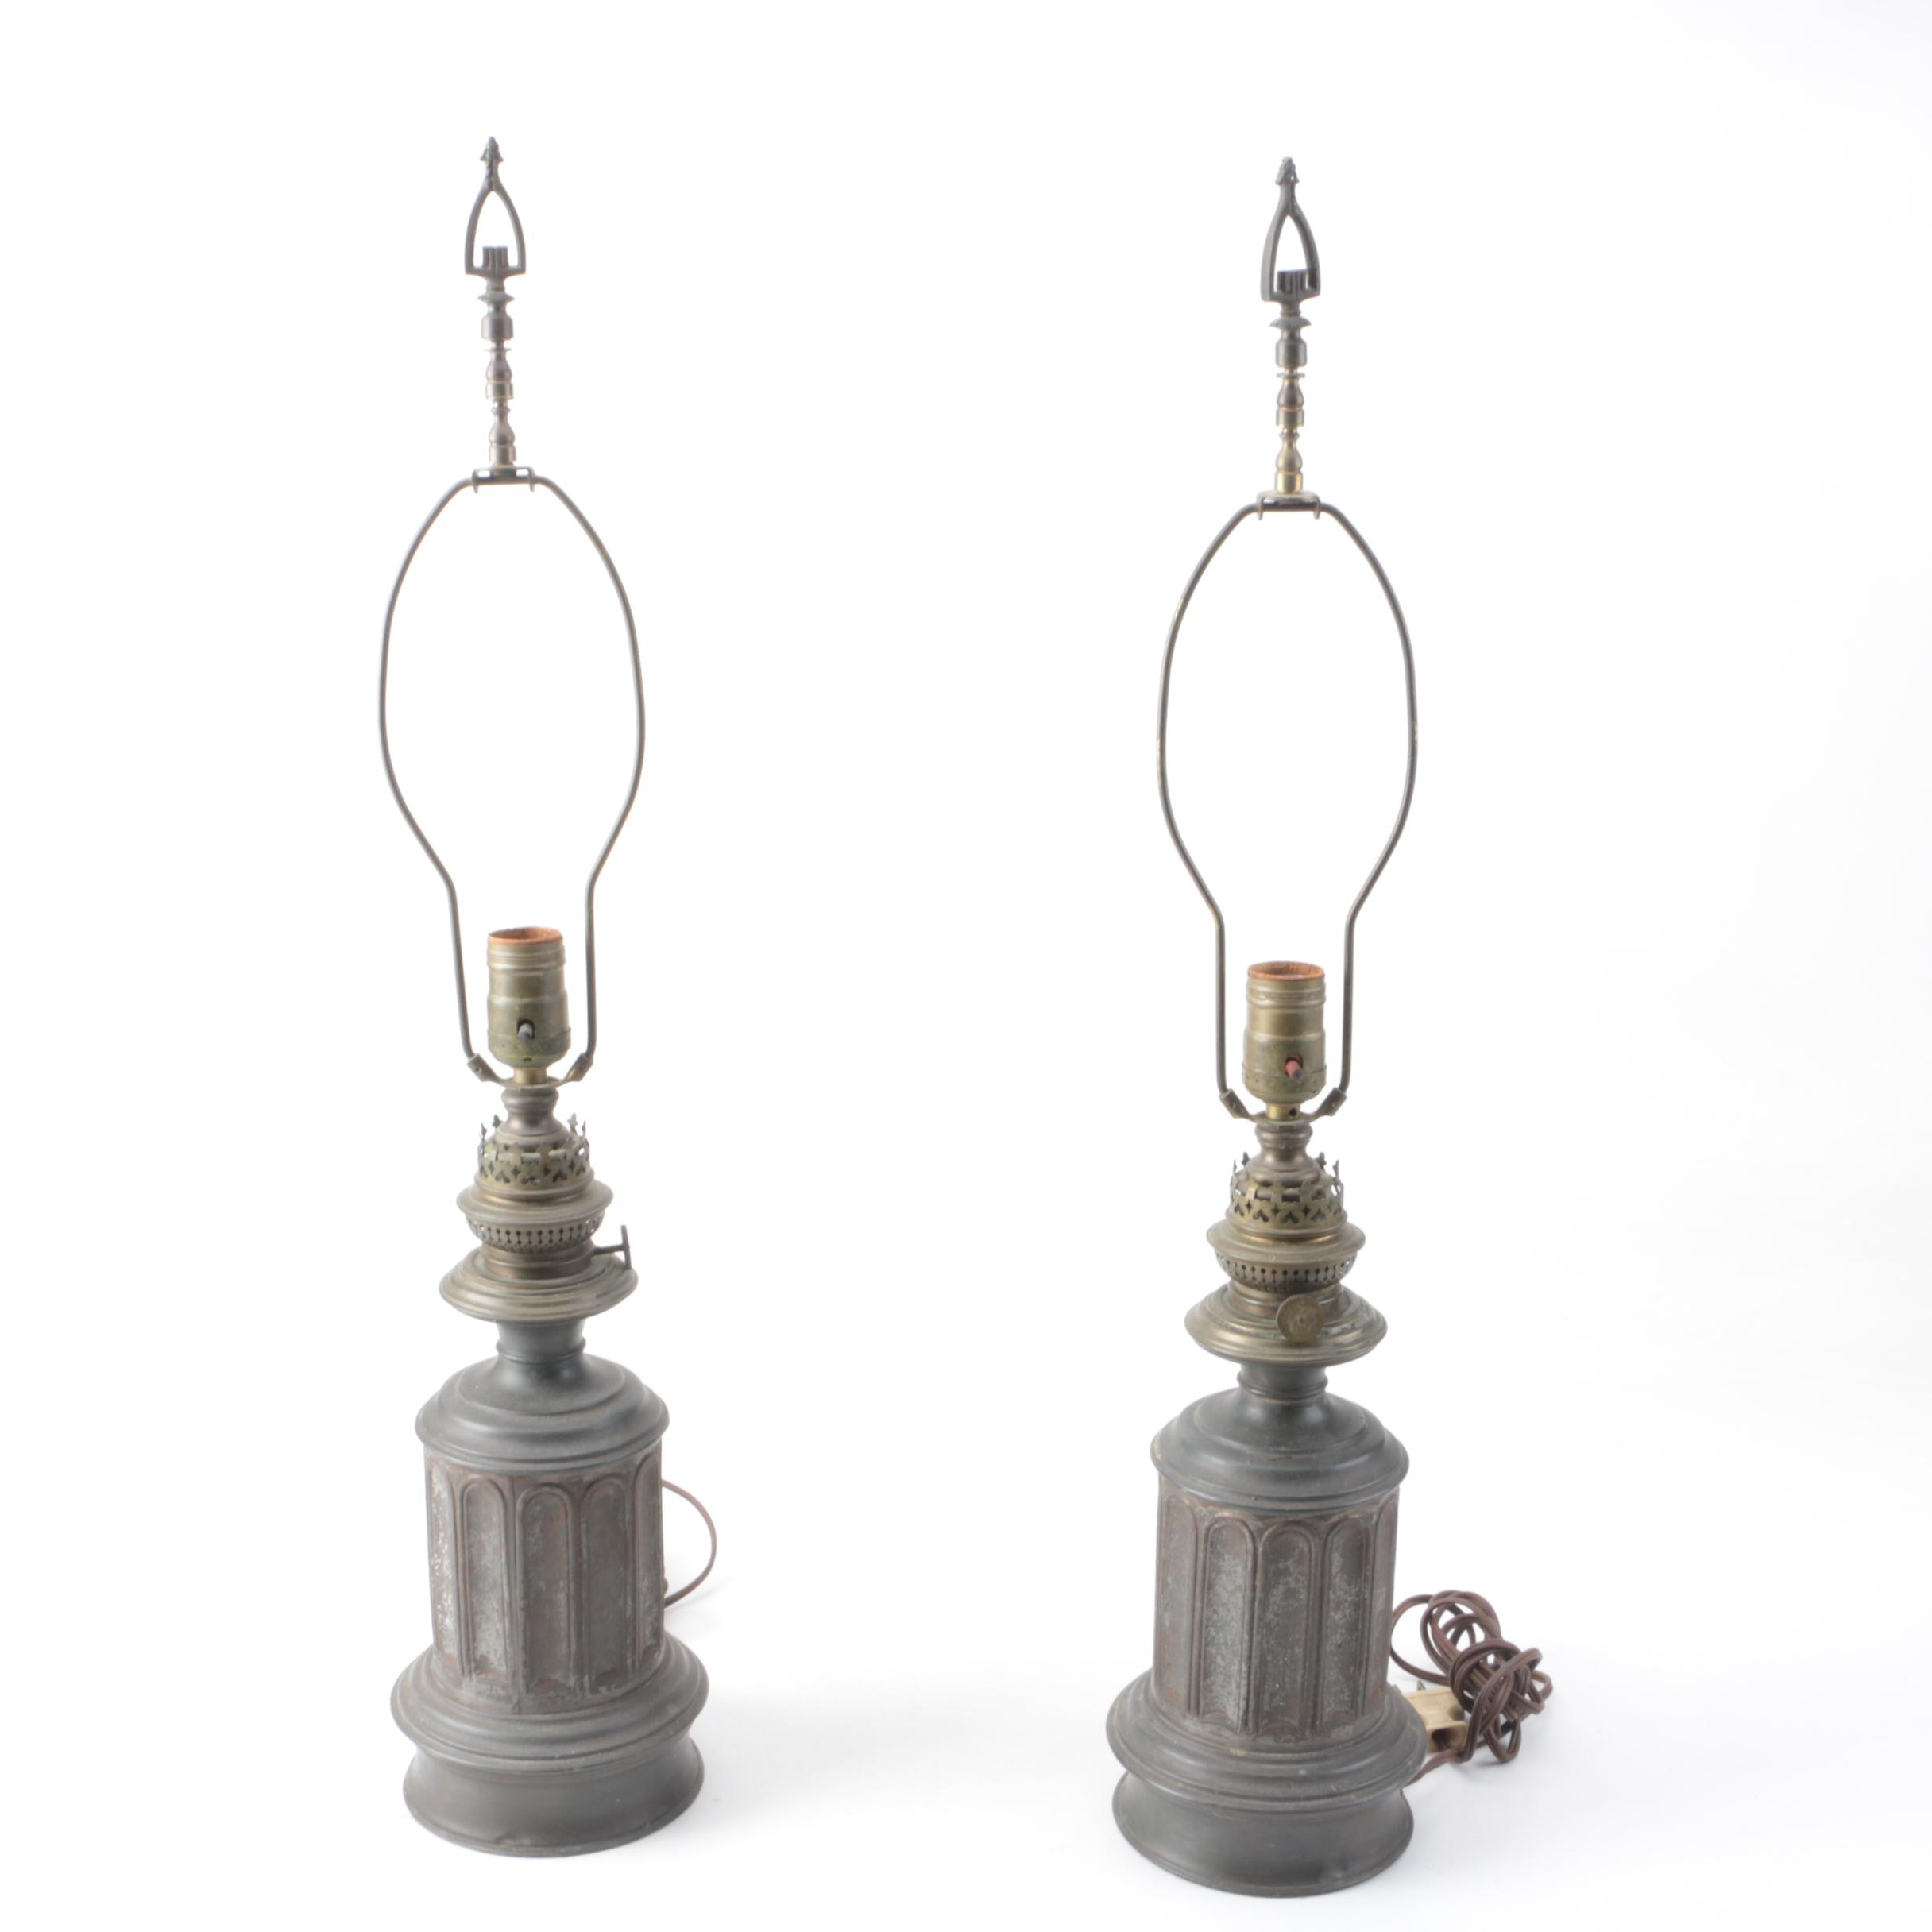 Pair of Vintage Wild & Wessel Table Lamps